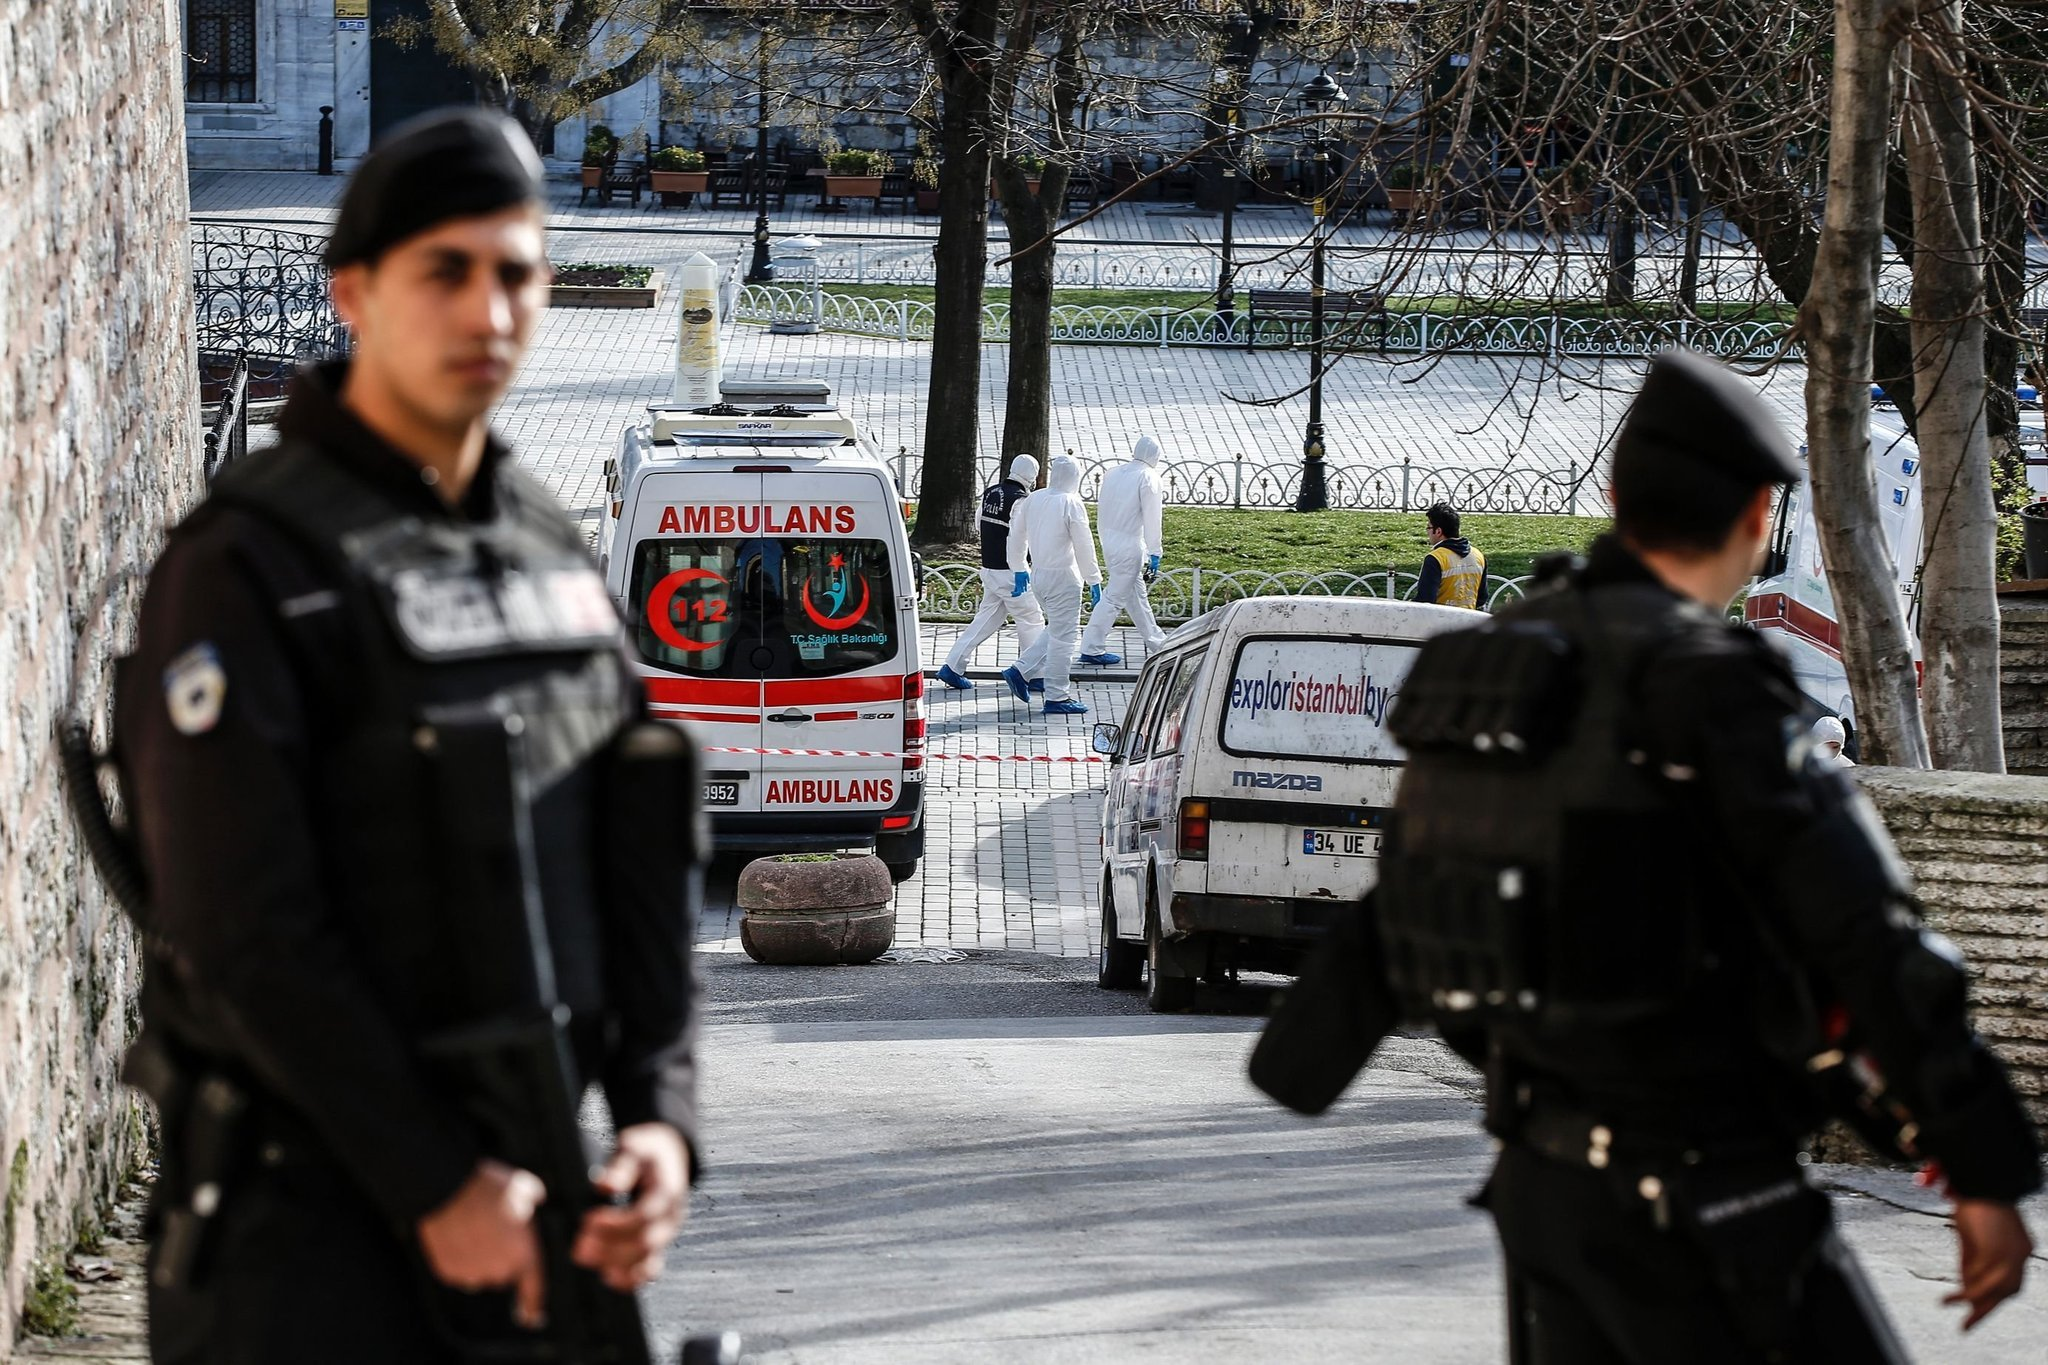 17 Syrians face charges over deadly Istanbul bombing, Turkey media says